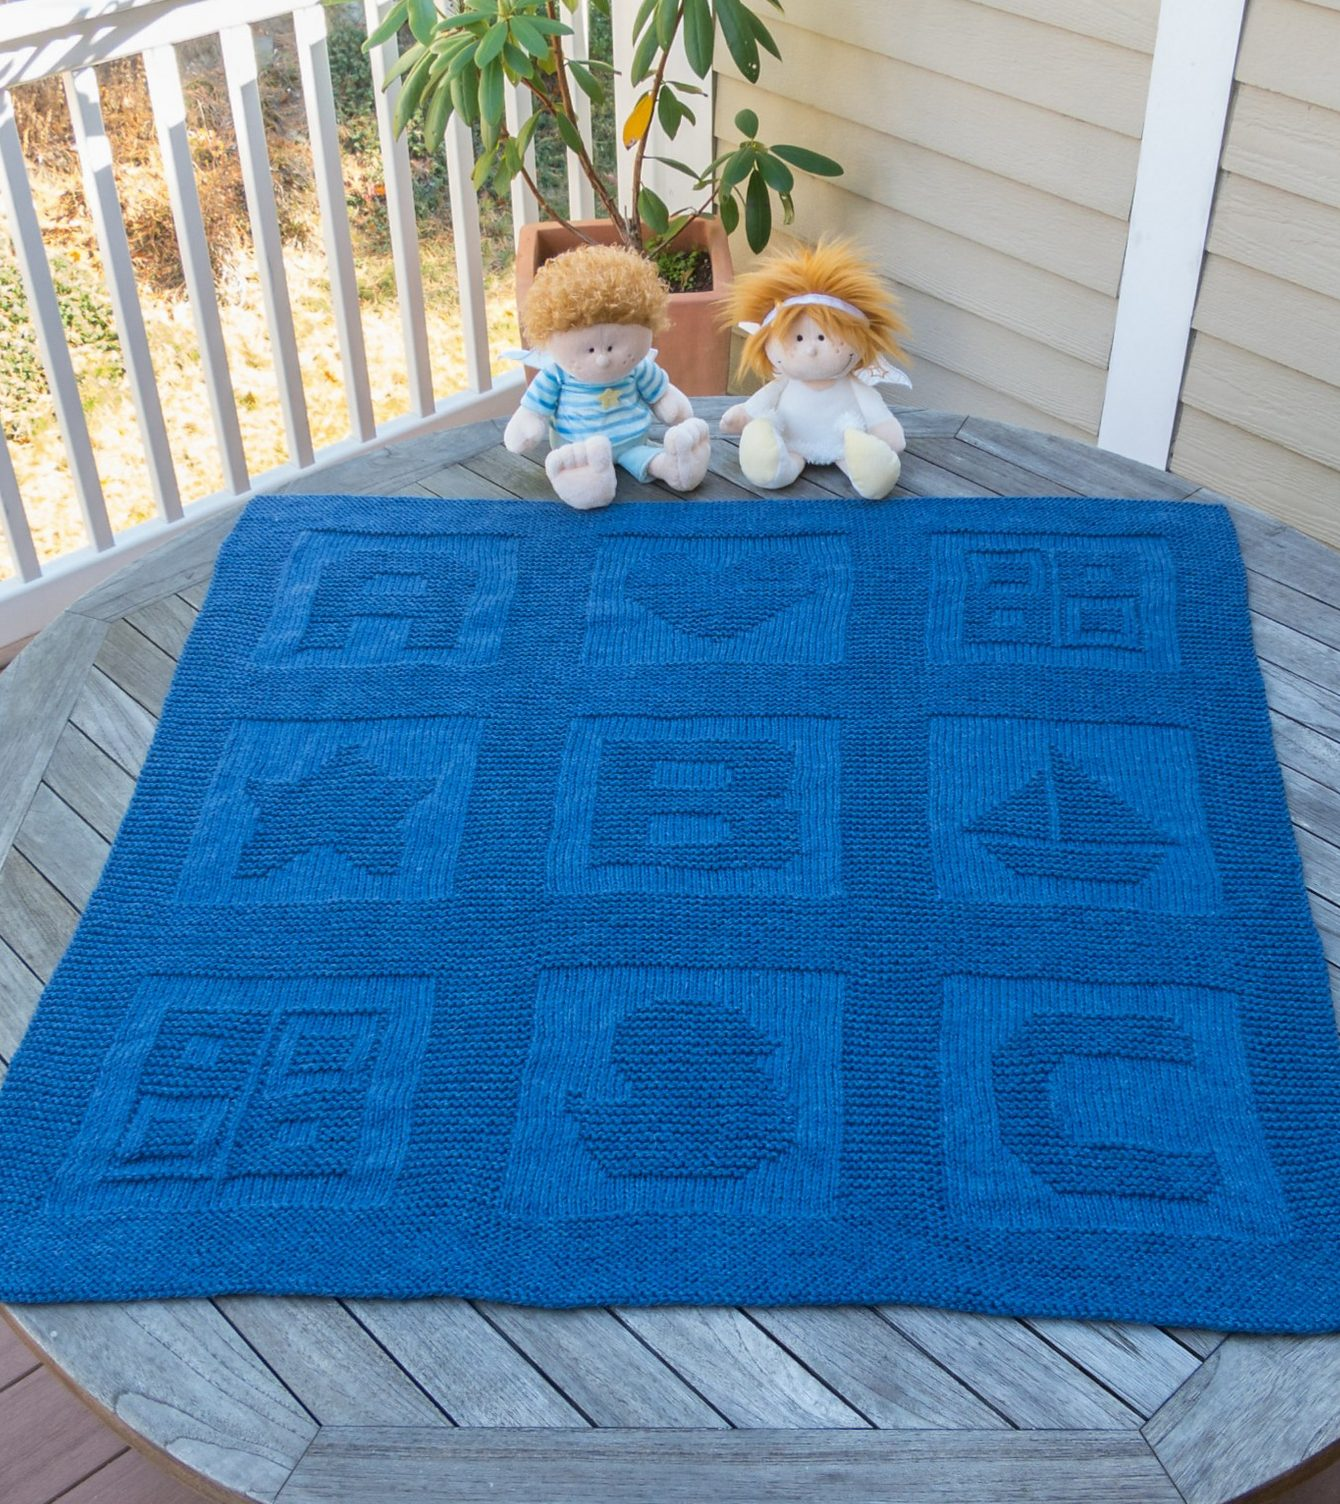 Free knitting patterns for baby blankets – ideas and considerations